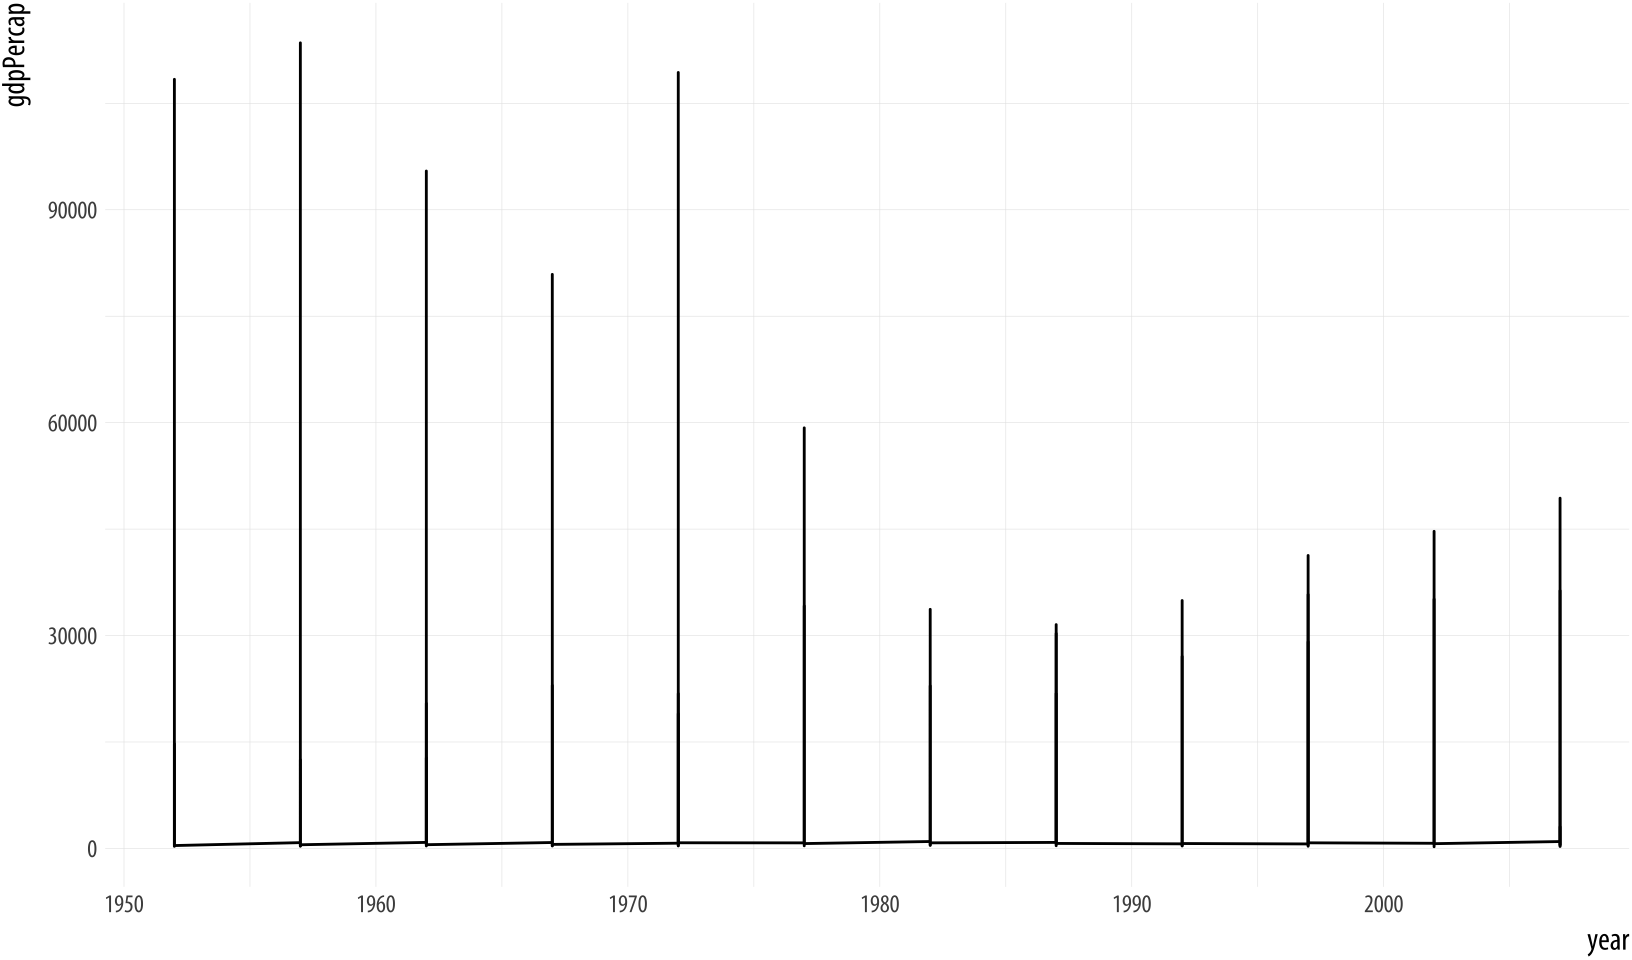 Trying to plot the data over time by country.